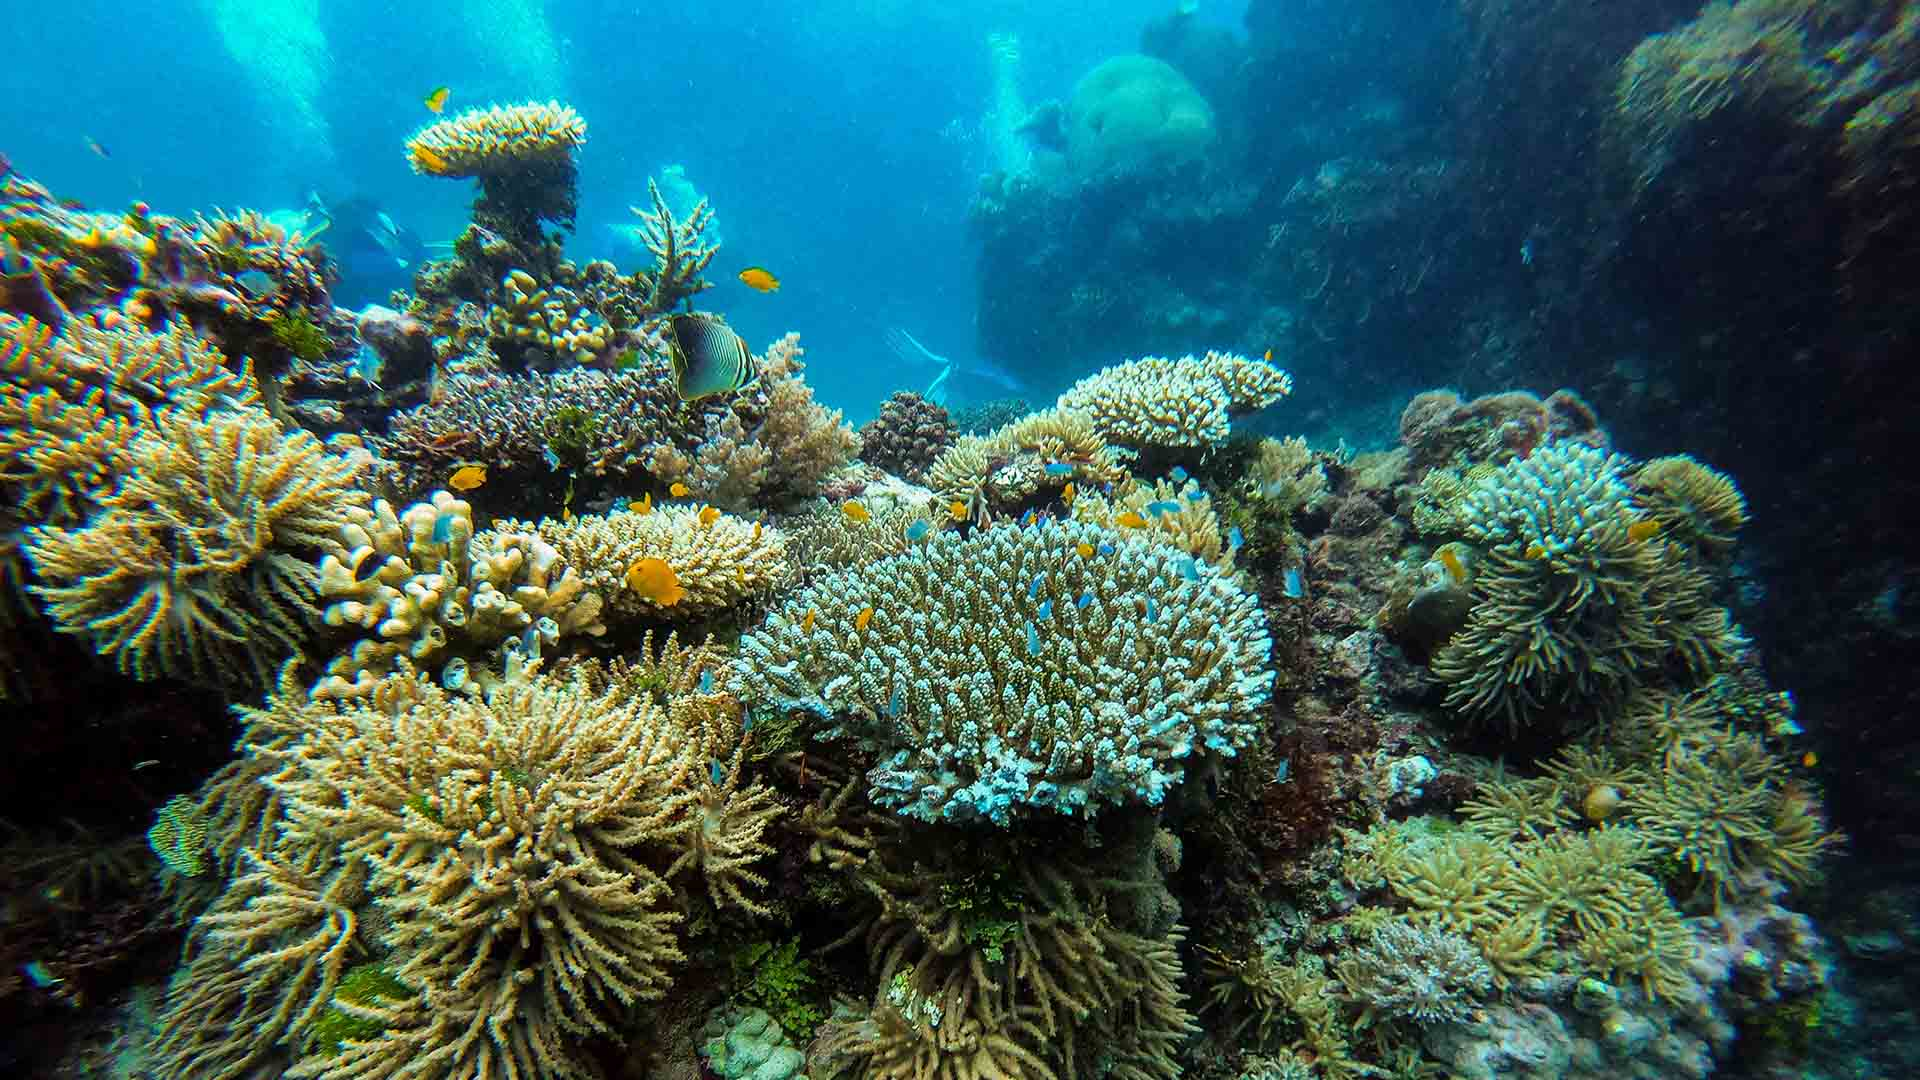 UNESCO's World Heritage Committee Says the Great Barrier Reef Should Be Considered